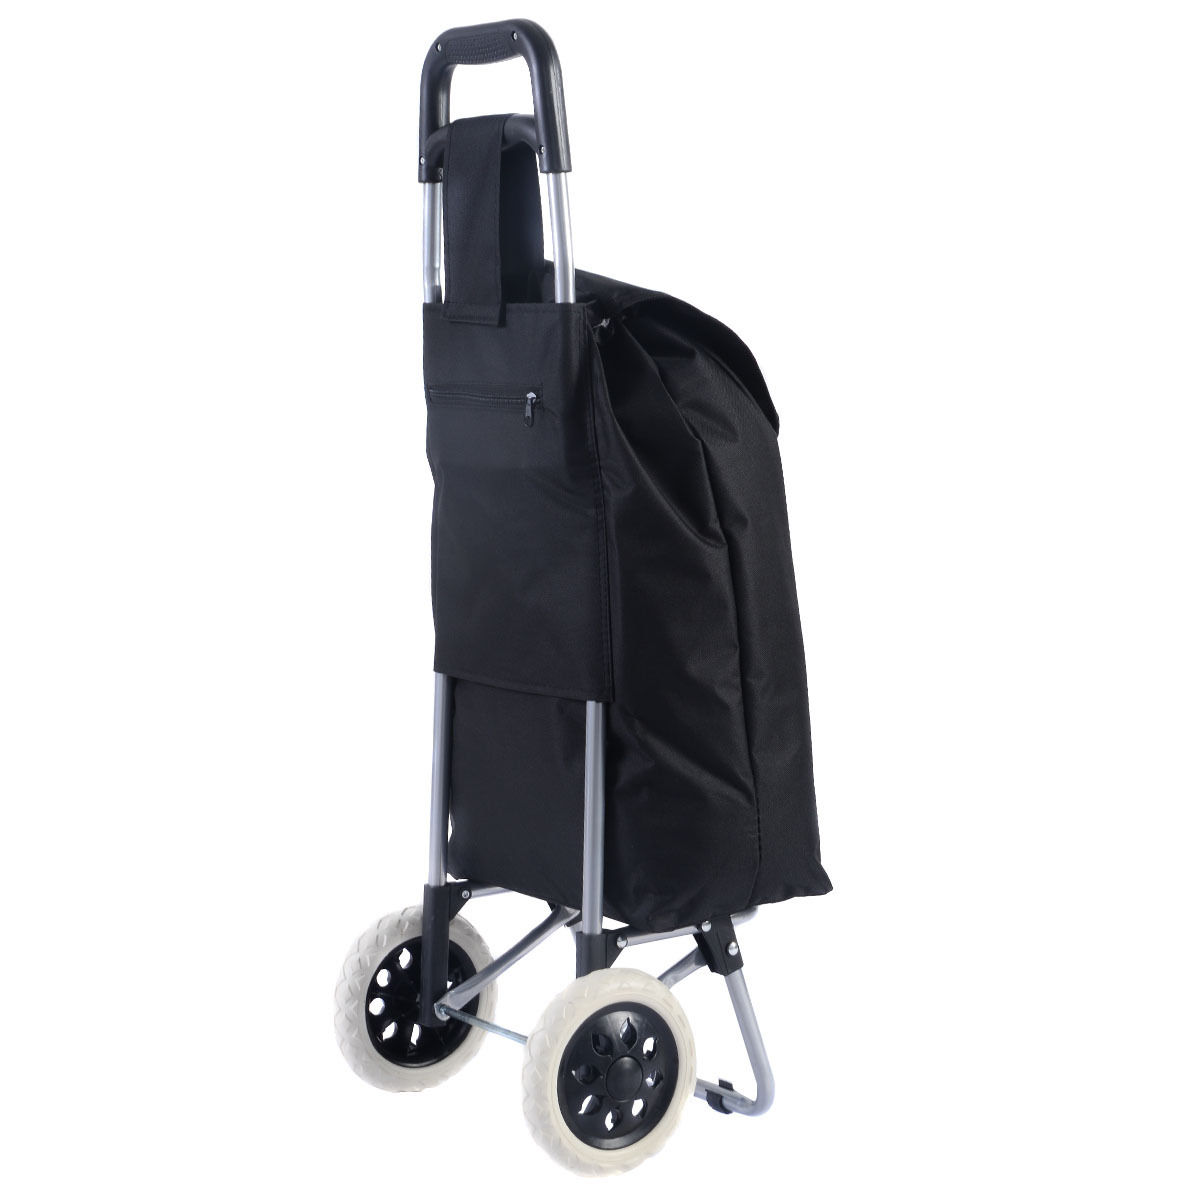 folding chair carts rolling desk black trolley travel shopping bag grocery wheel